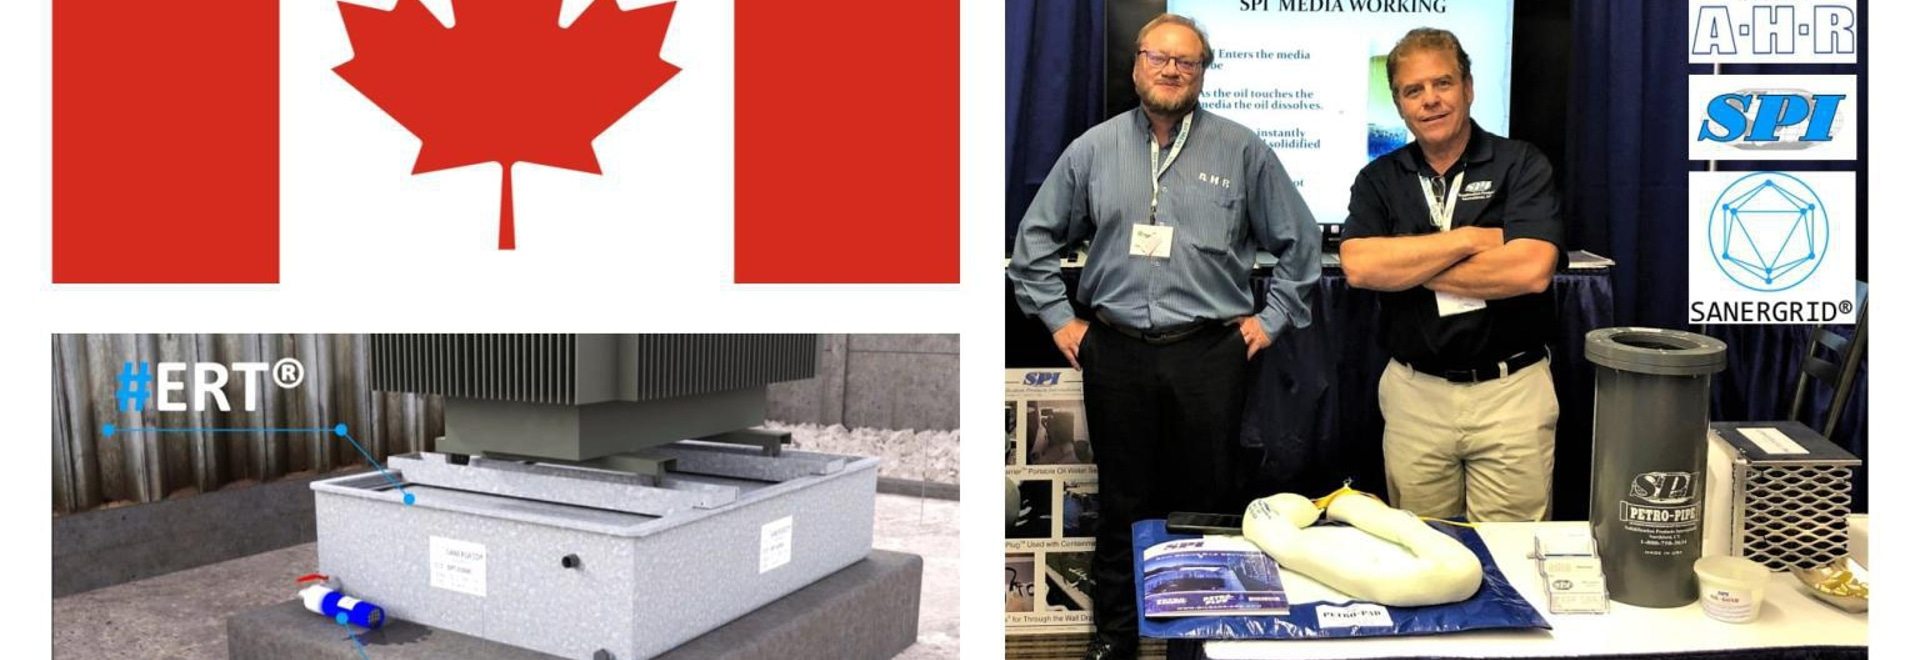 From September 16th to 19th, #SANERGRID was in Canada at #CIGRE #Montreal with its partners #AHR and #SPI.